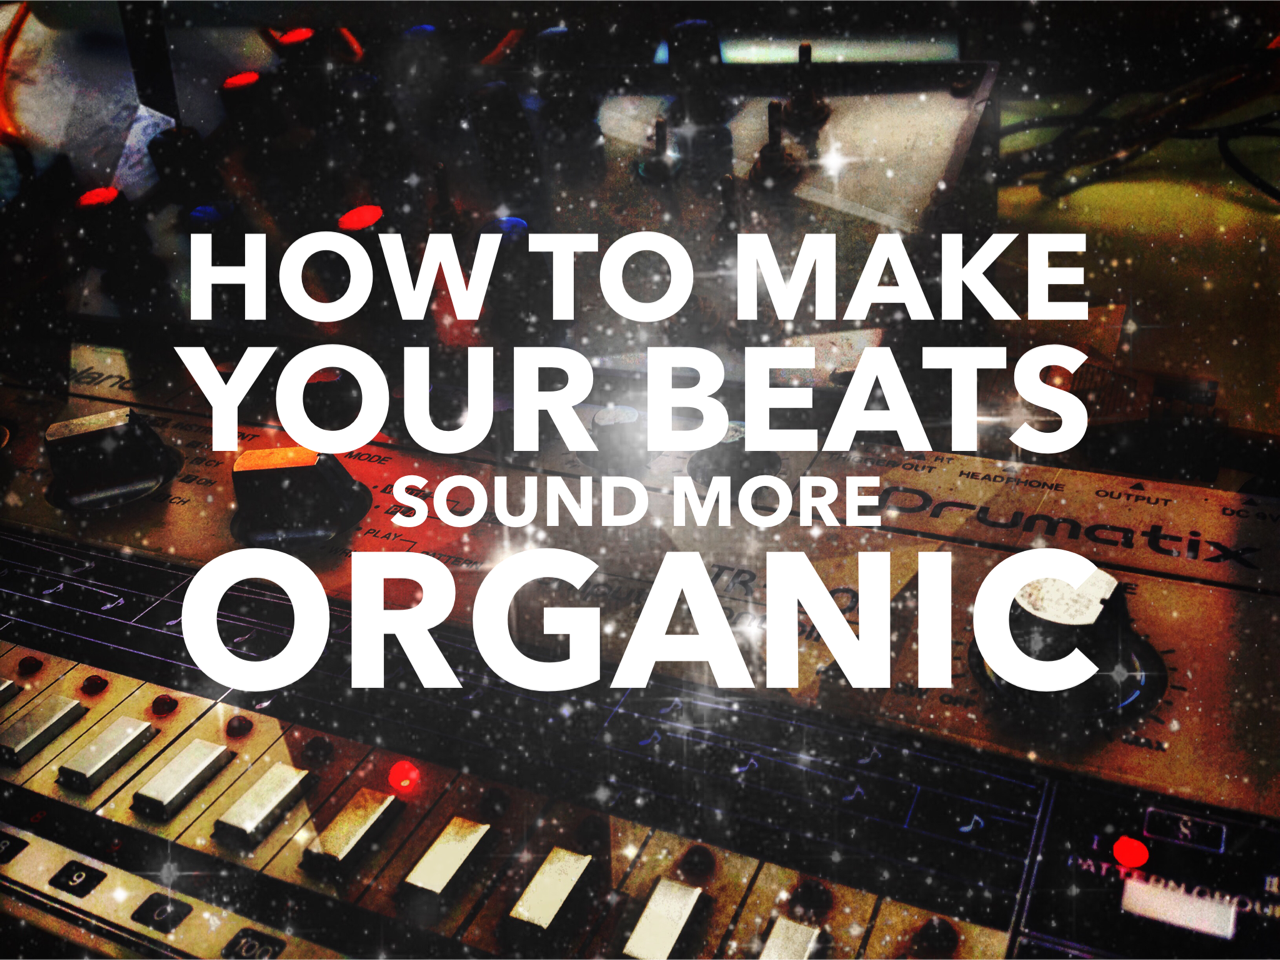 How To Make Your Beats Sound More Organic